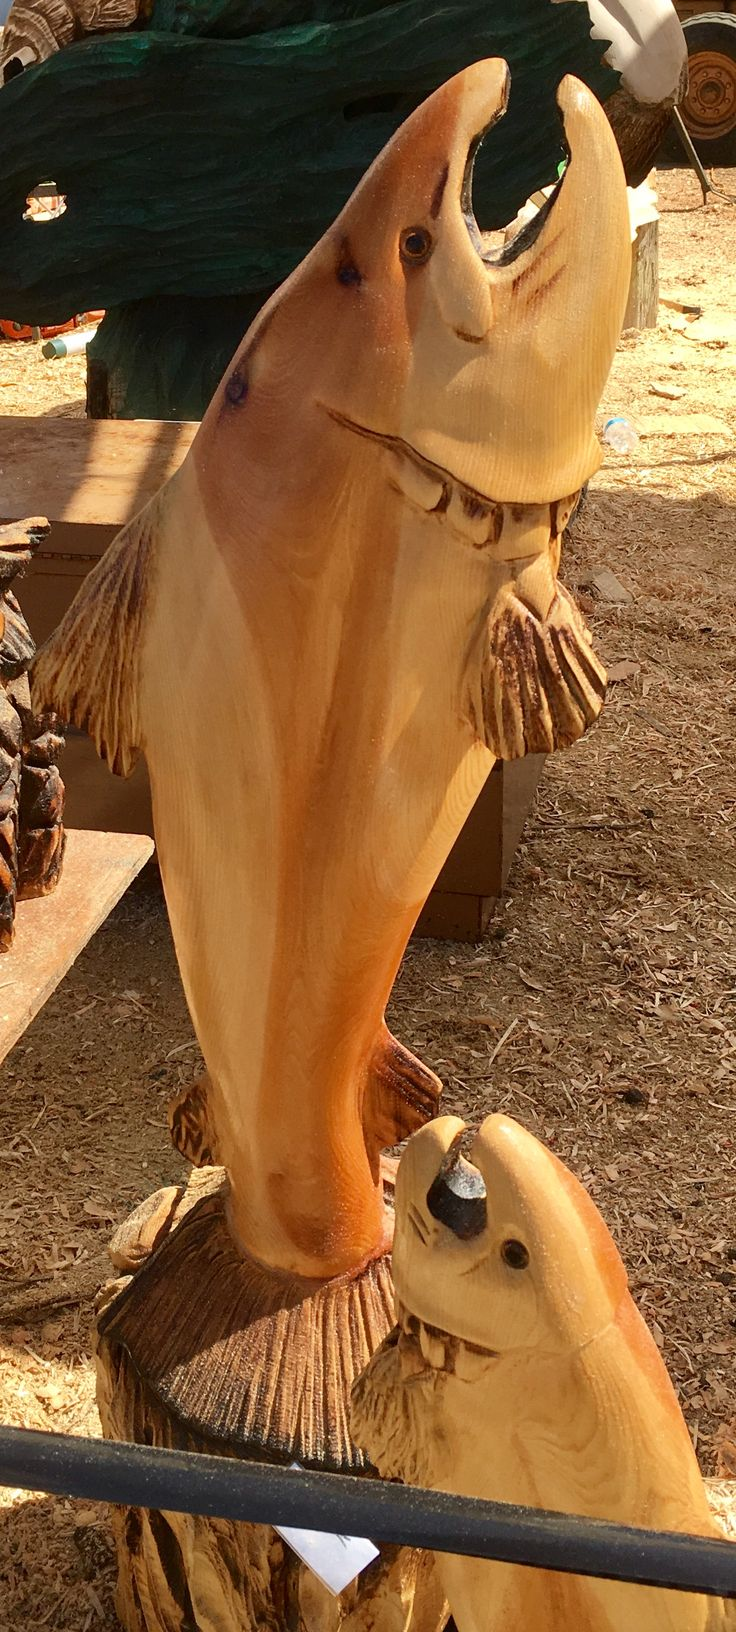 Best chainsaw carving world championship reedsport